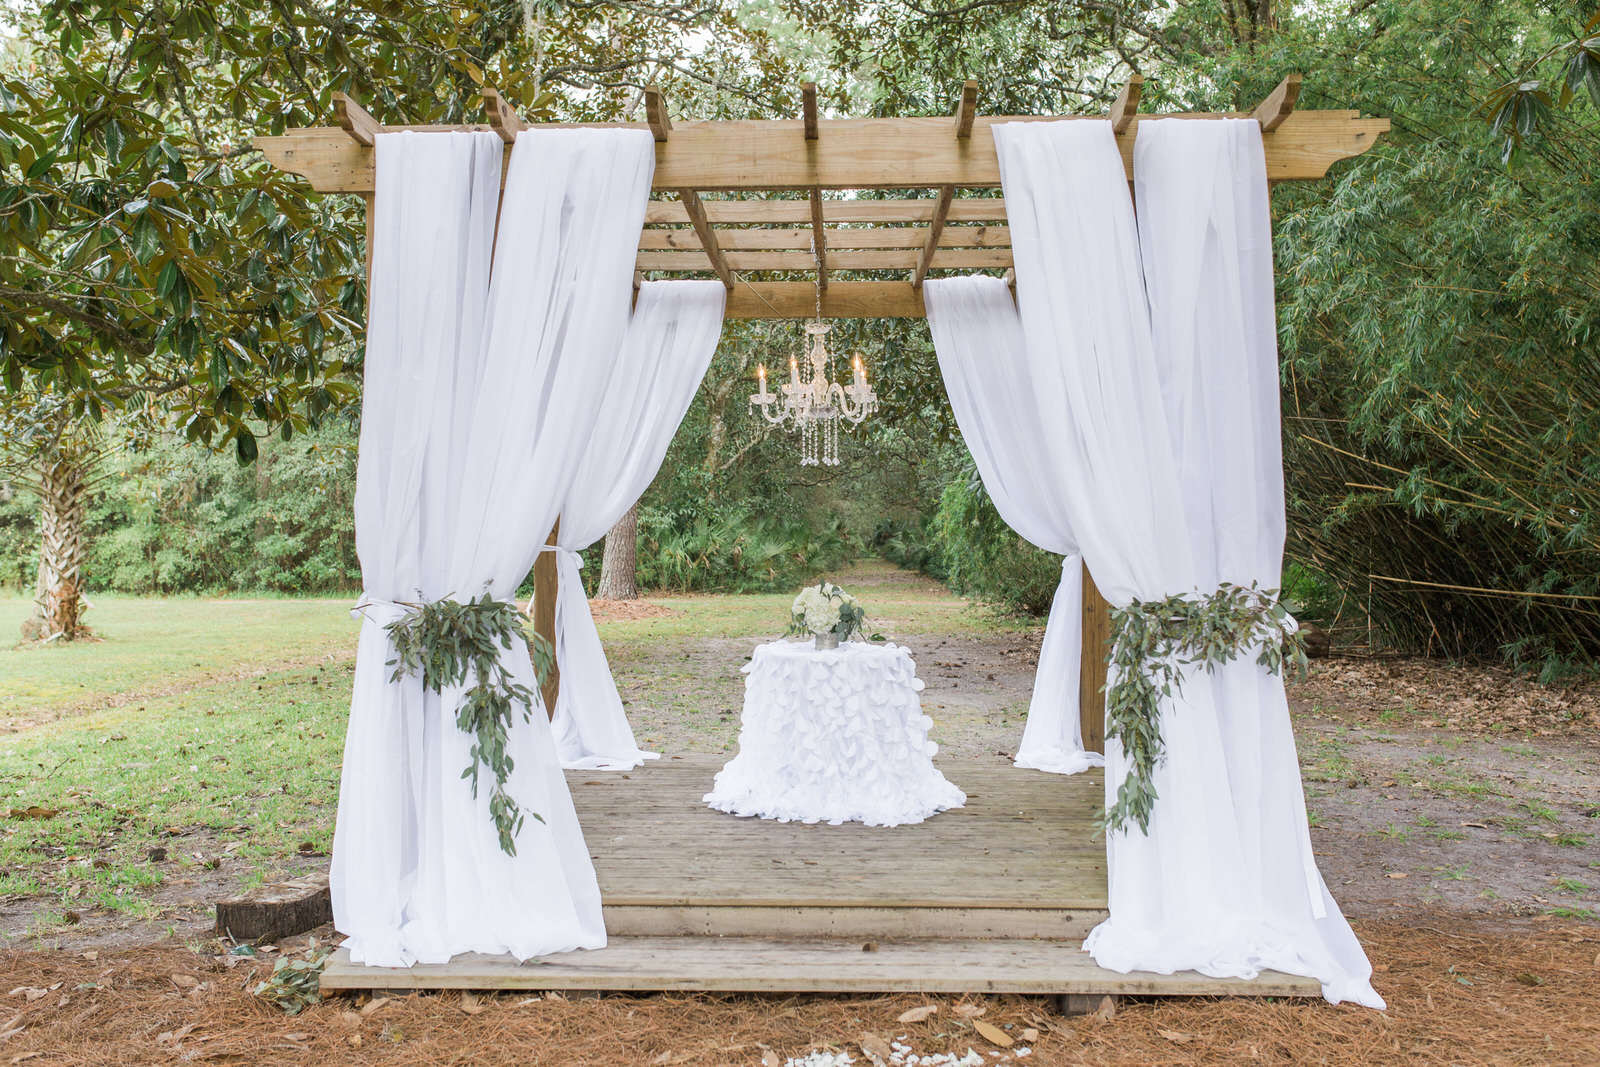 Gazebo draped in white fabric and accented with eucalyptus for wedding ceremony at The Linwood outside of Jacksonville